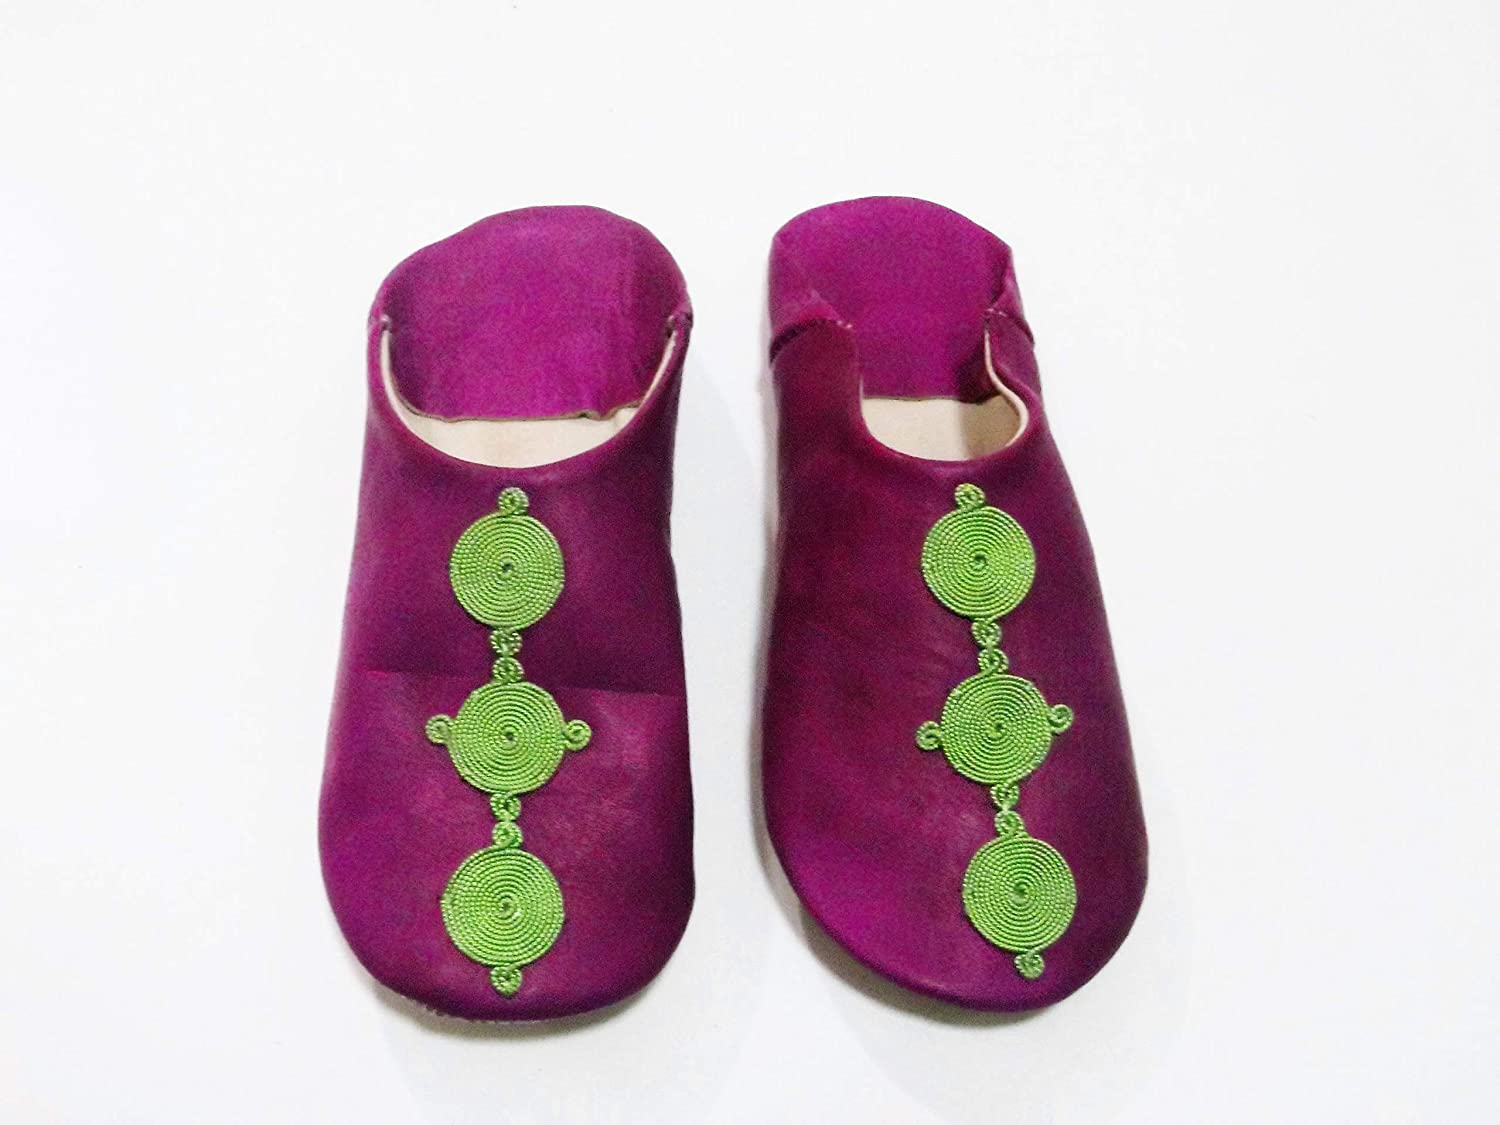 differently half off discount sale Amazon.com: Slippers For womens,women house shoes slippers ...